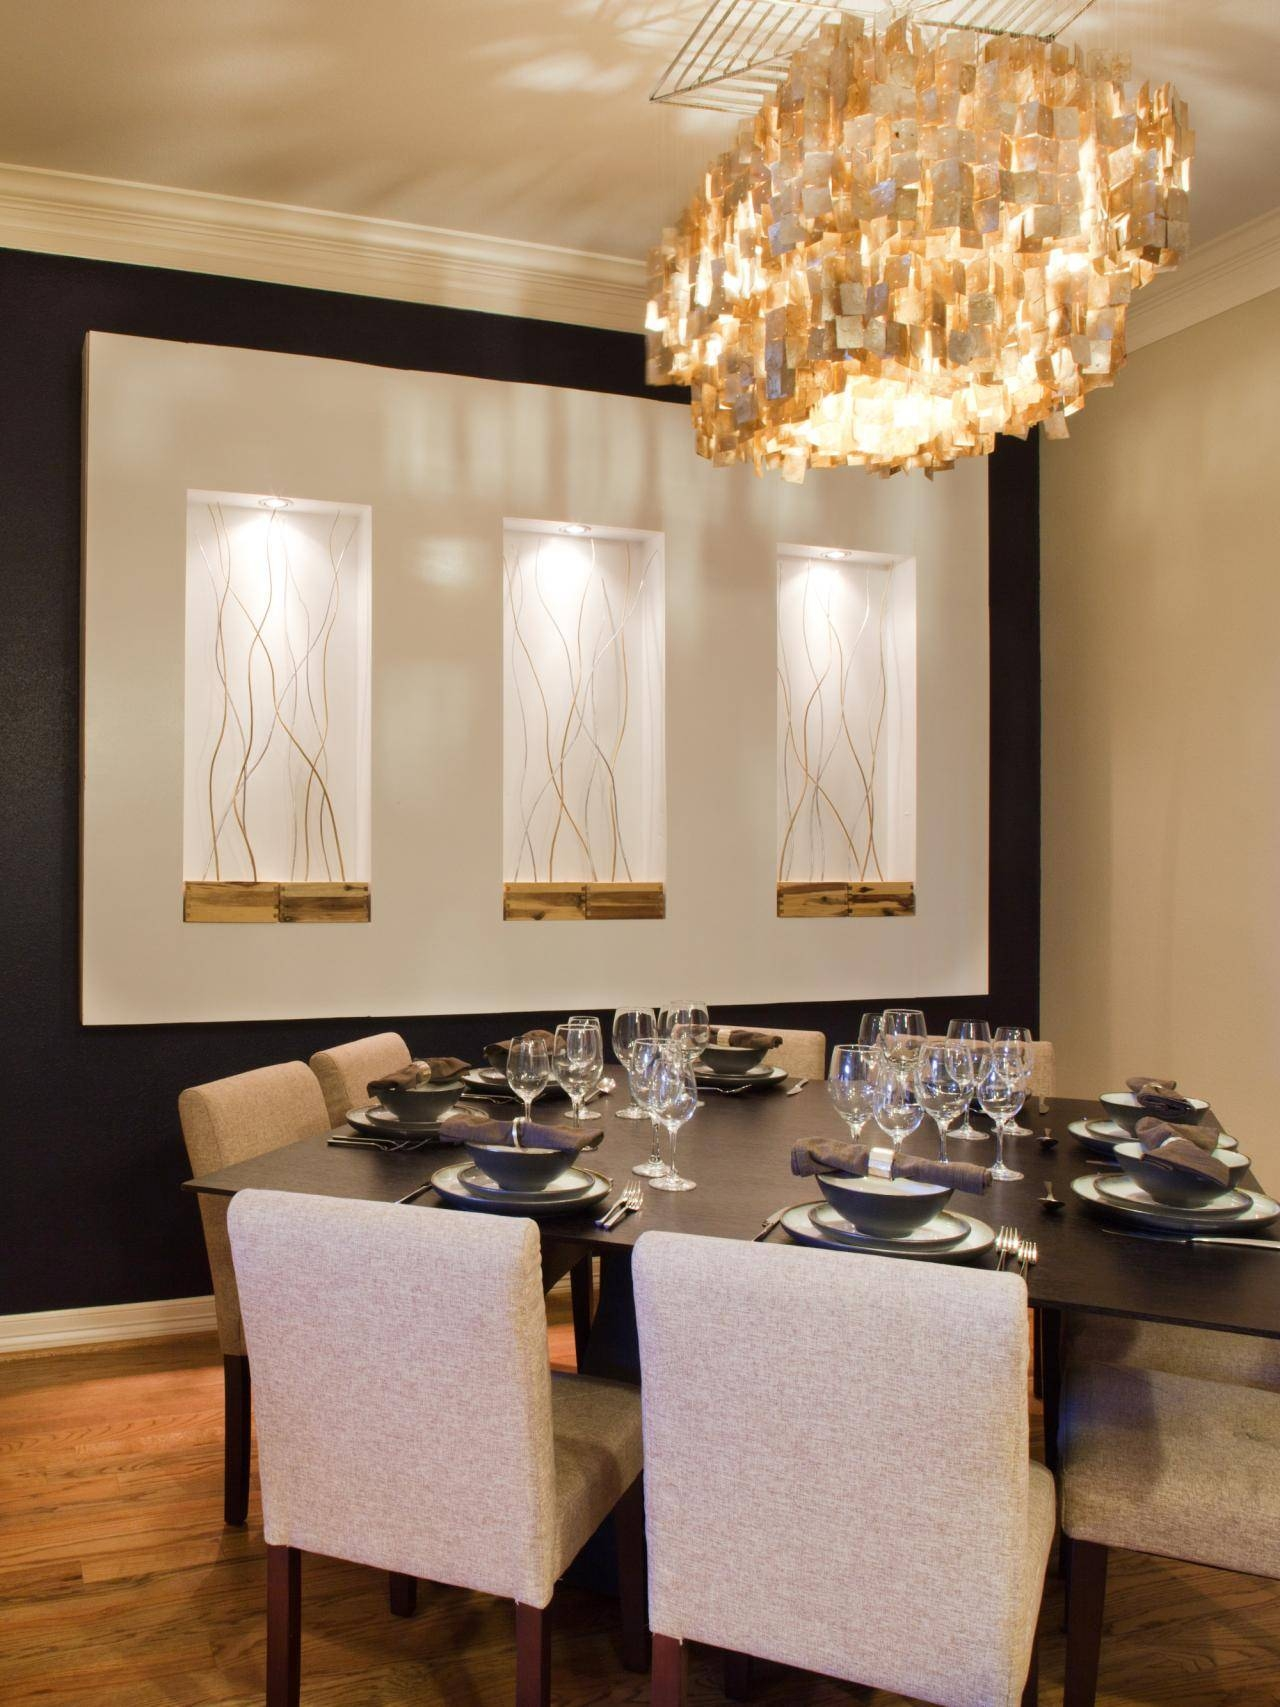 Modern Wall Art For Dining Room – Alliancemv Pertaining To Most Up To Date Dining Wall Art (View 17 of 25)